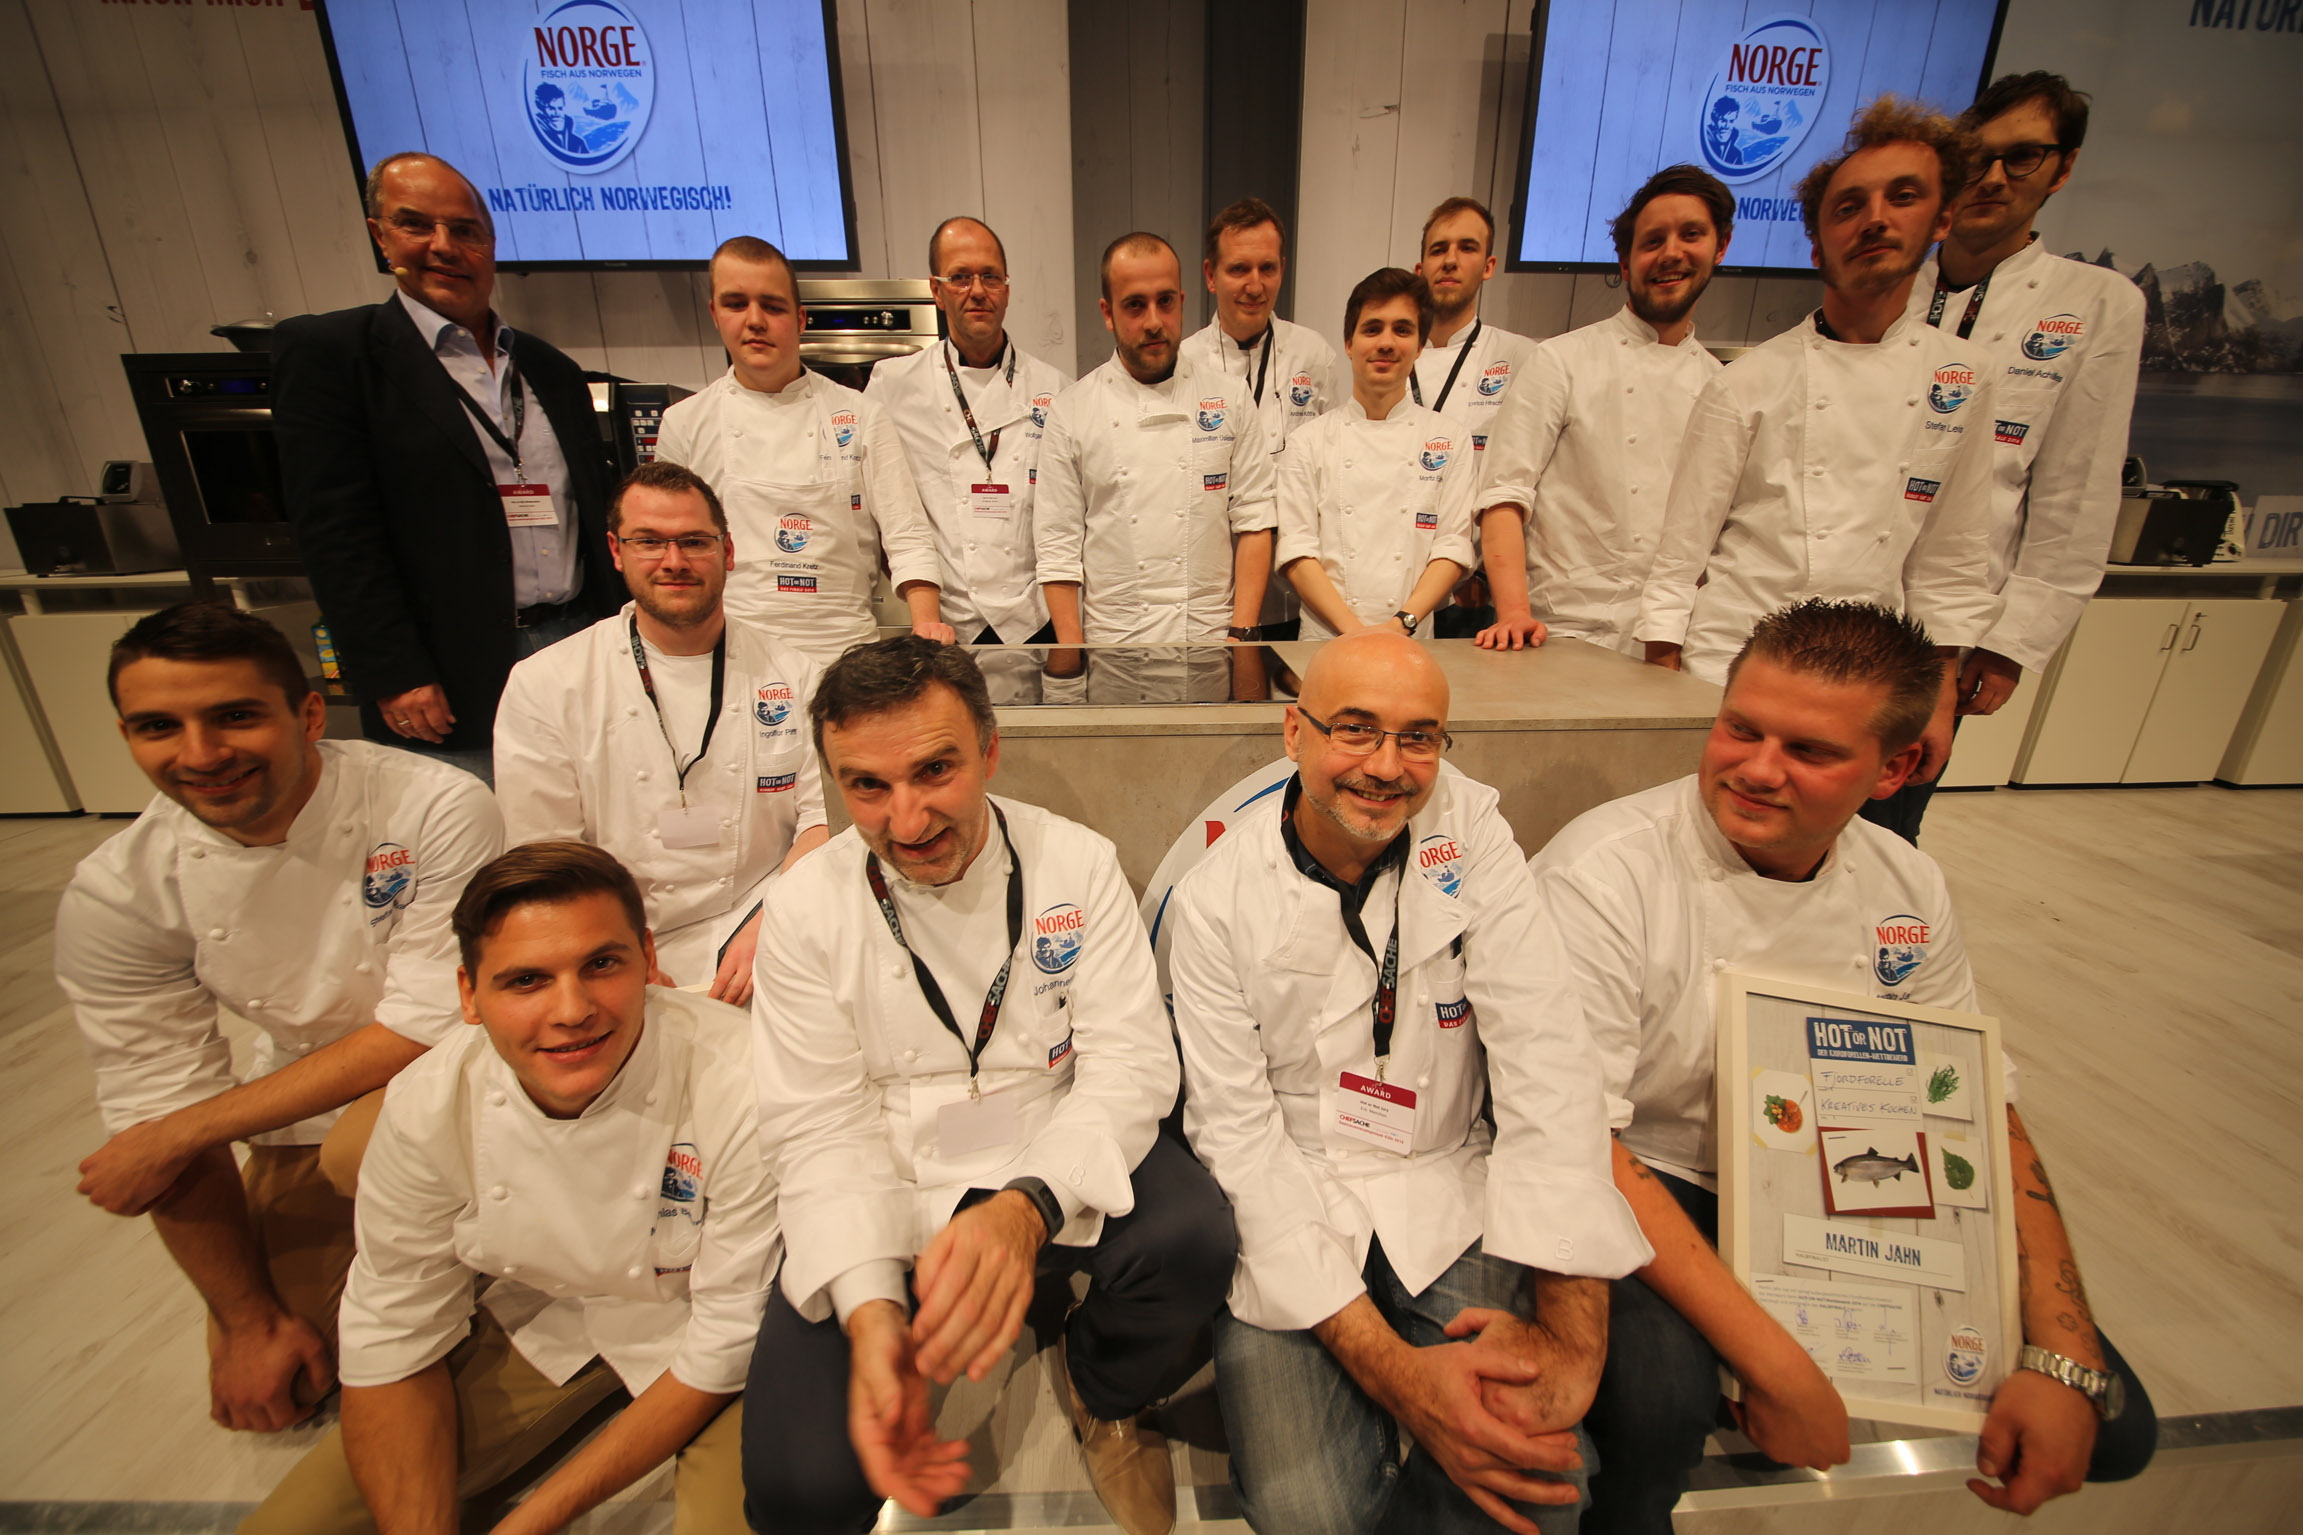 CHEF-SACHE 2014: HOT OR NOT – HALBFINALE